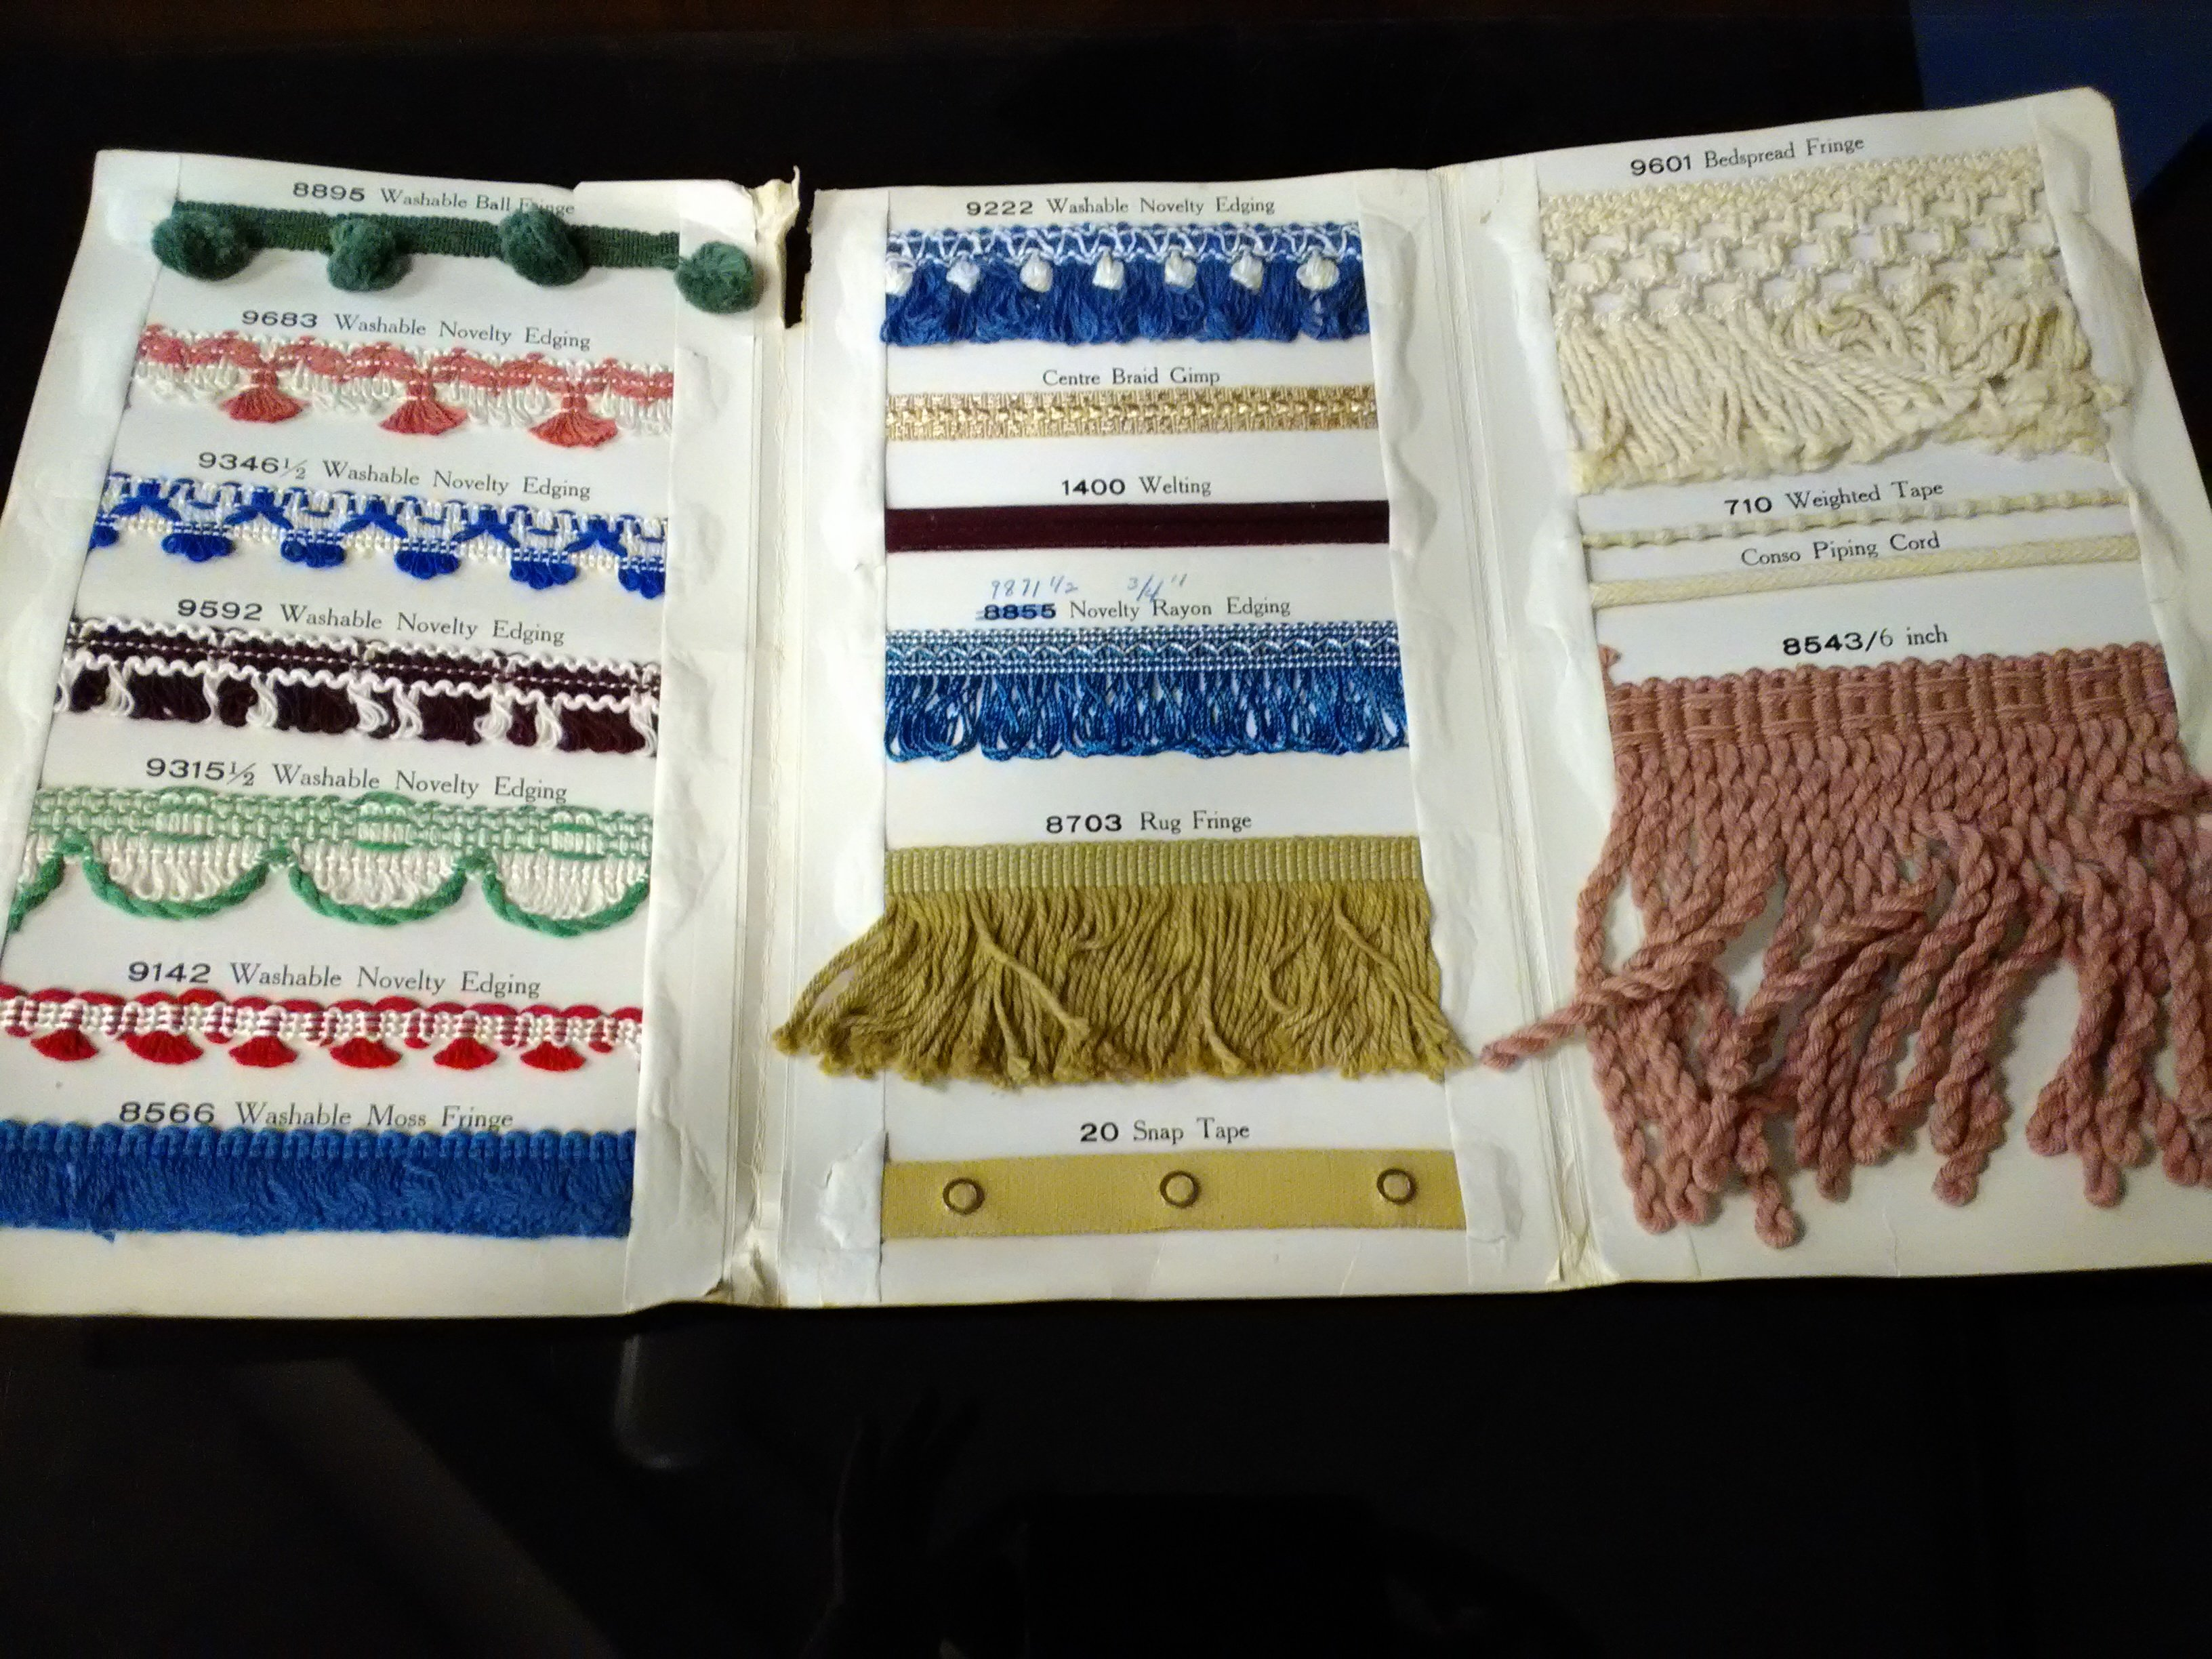 Trim samples as ordered and sold by Scotts 5 and 10 Cent store as displayed in 175th Anniversary of Carthage exhibit in 2017. These goods were manufactured by Montgomery Mills, Inc., of New York City and date from late 1940s.